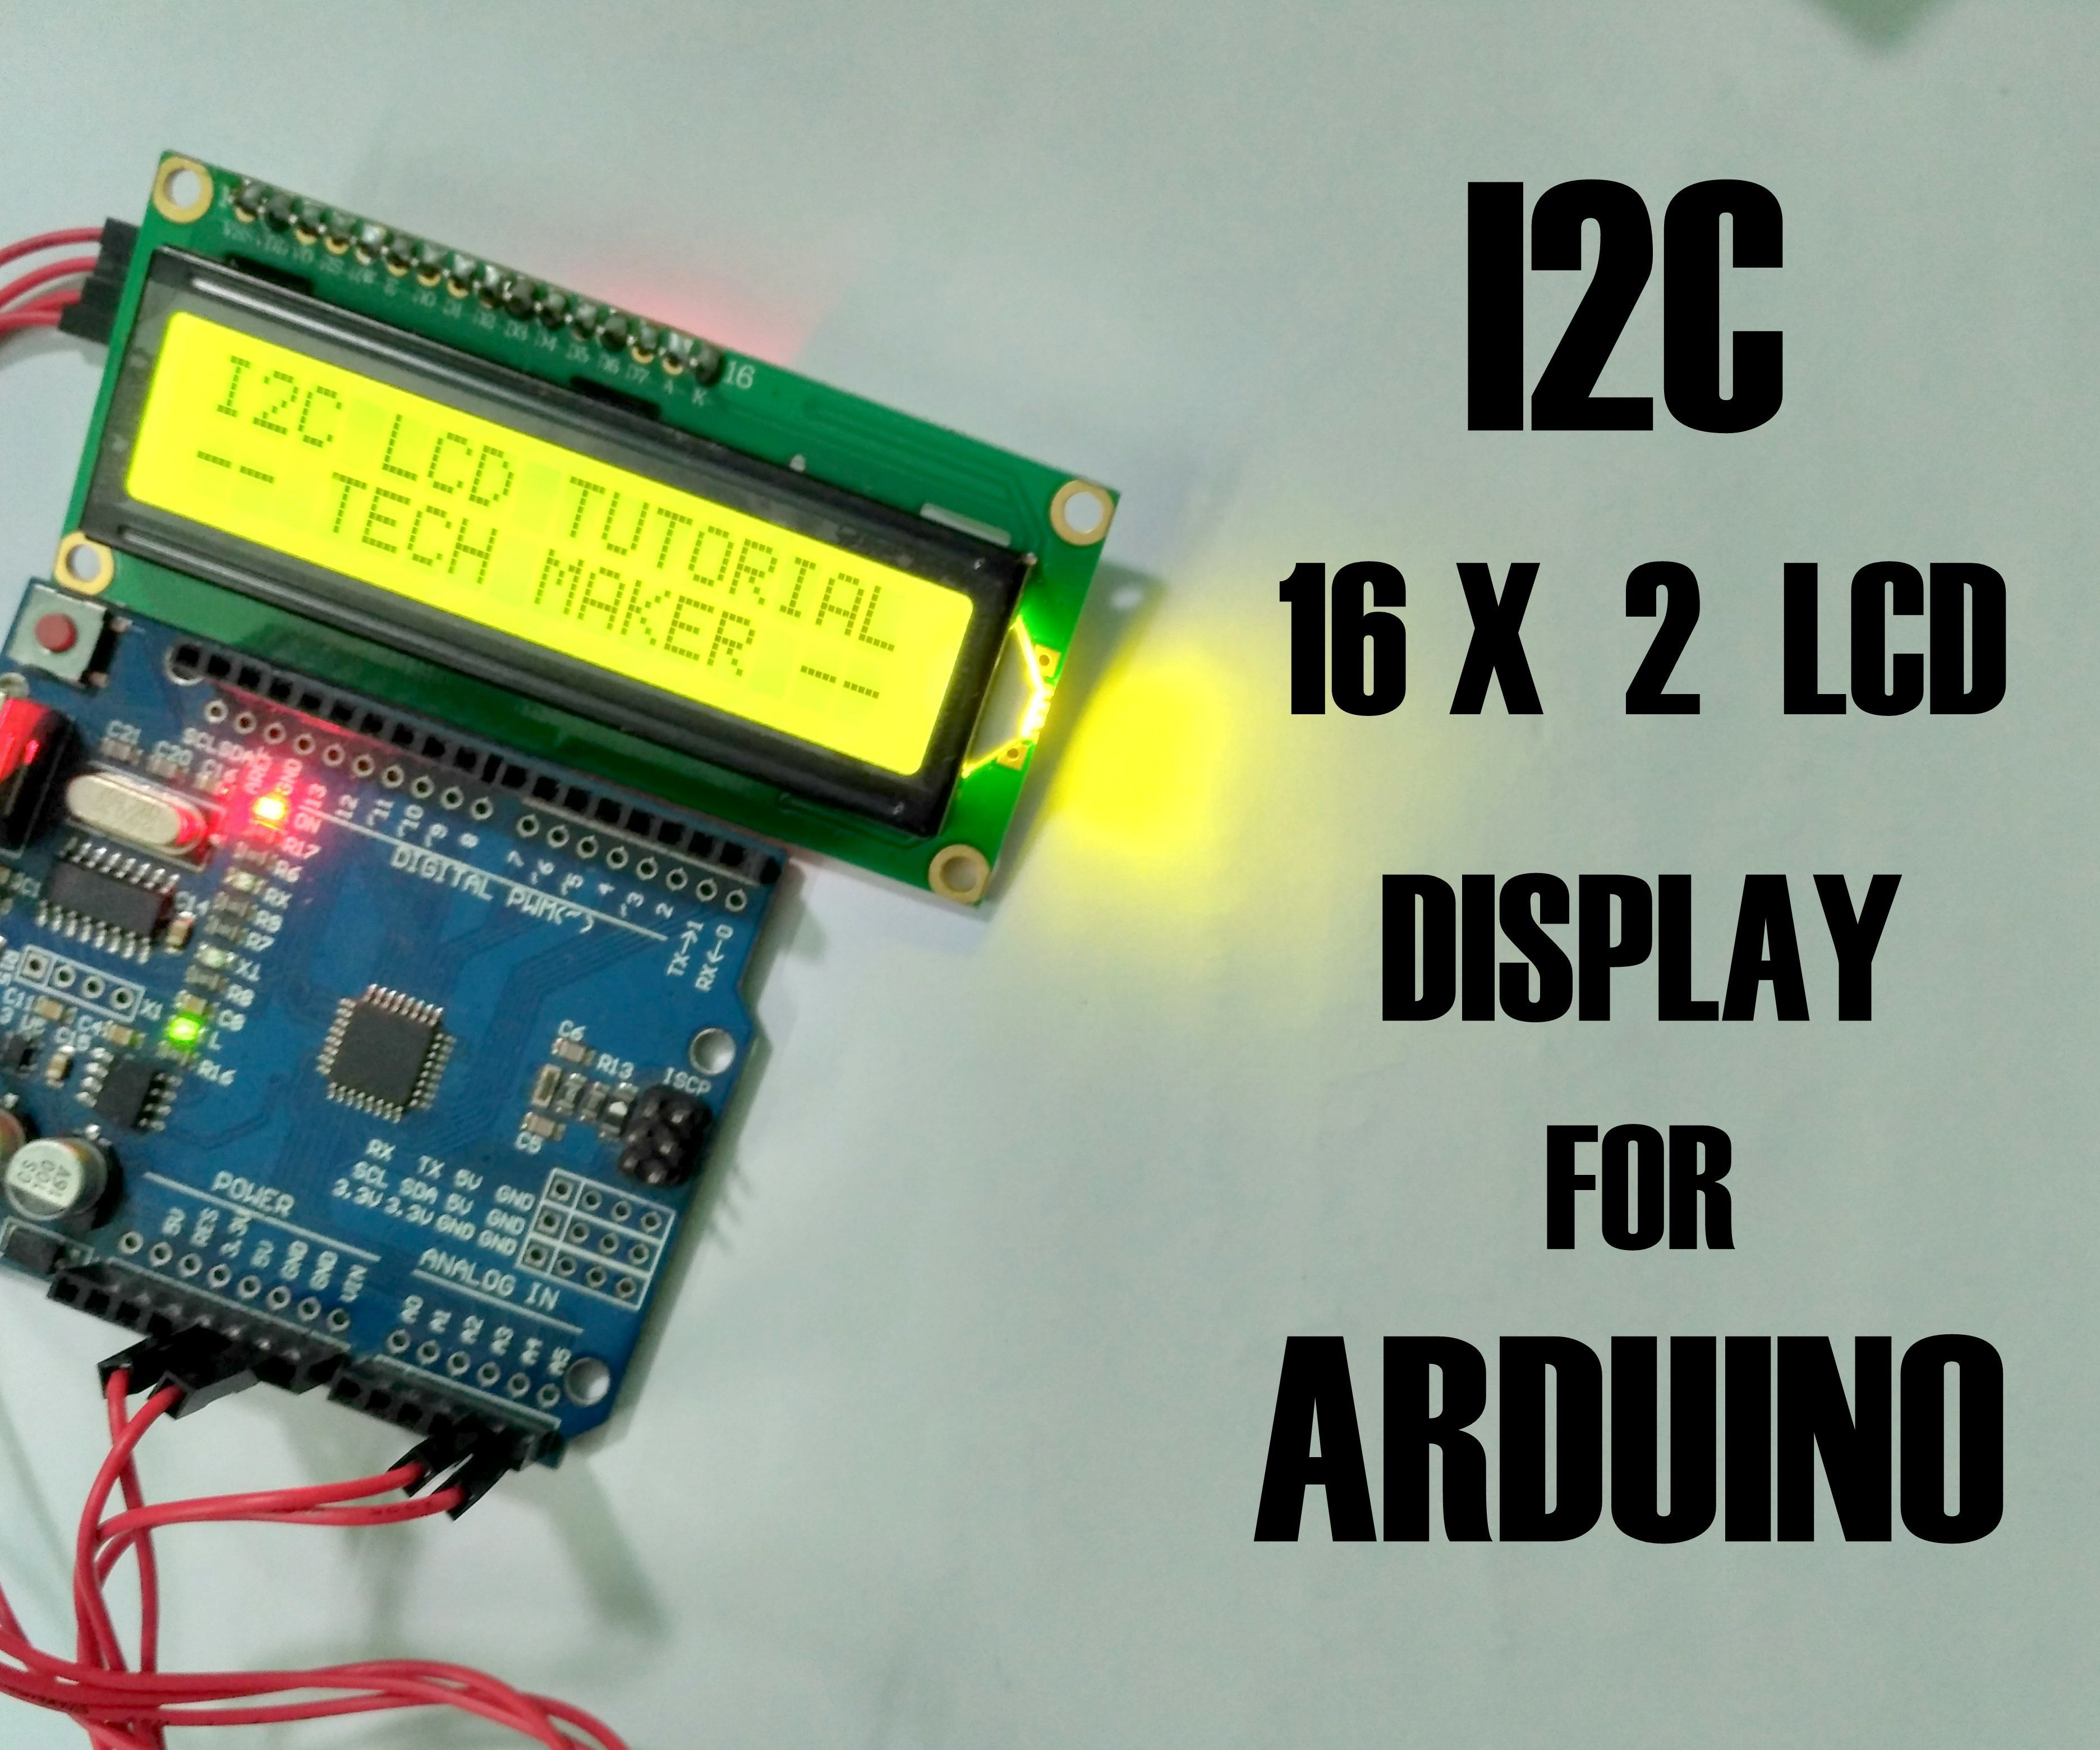 How to Connect I2C Lcd Display to Arduino Uno: 5 Steps (with Pictures)